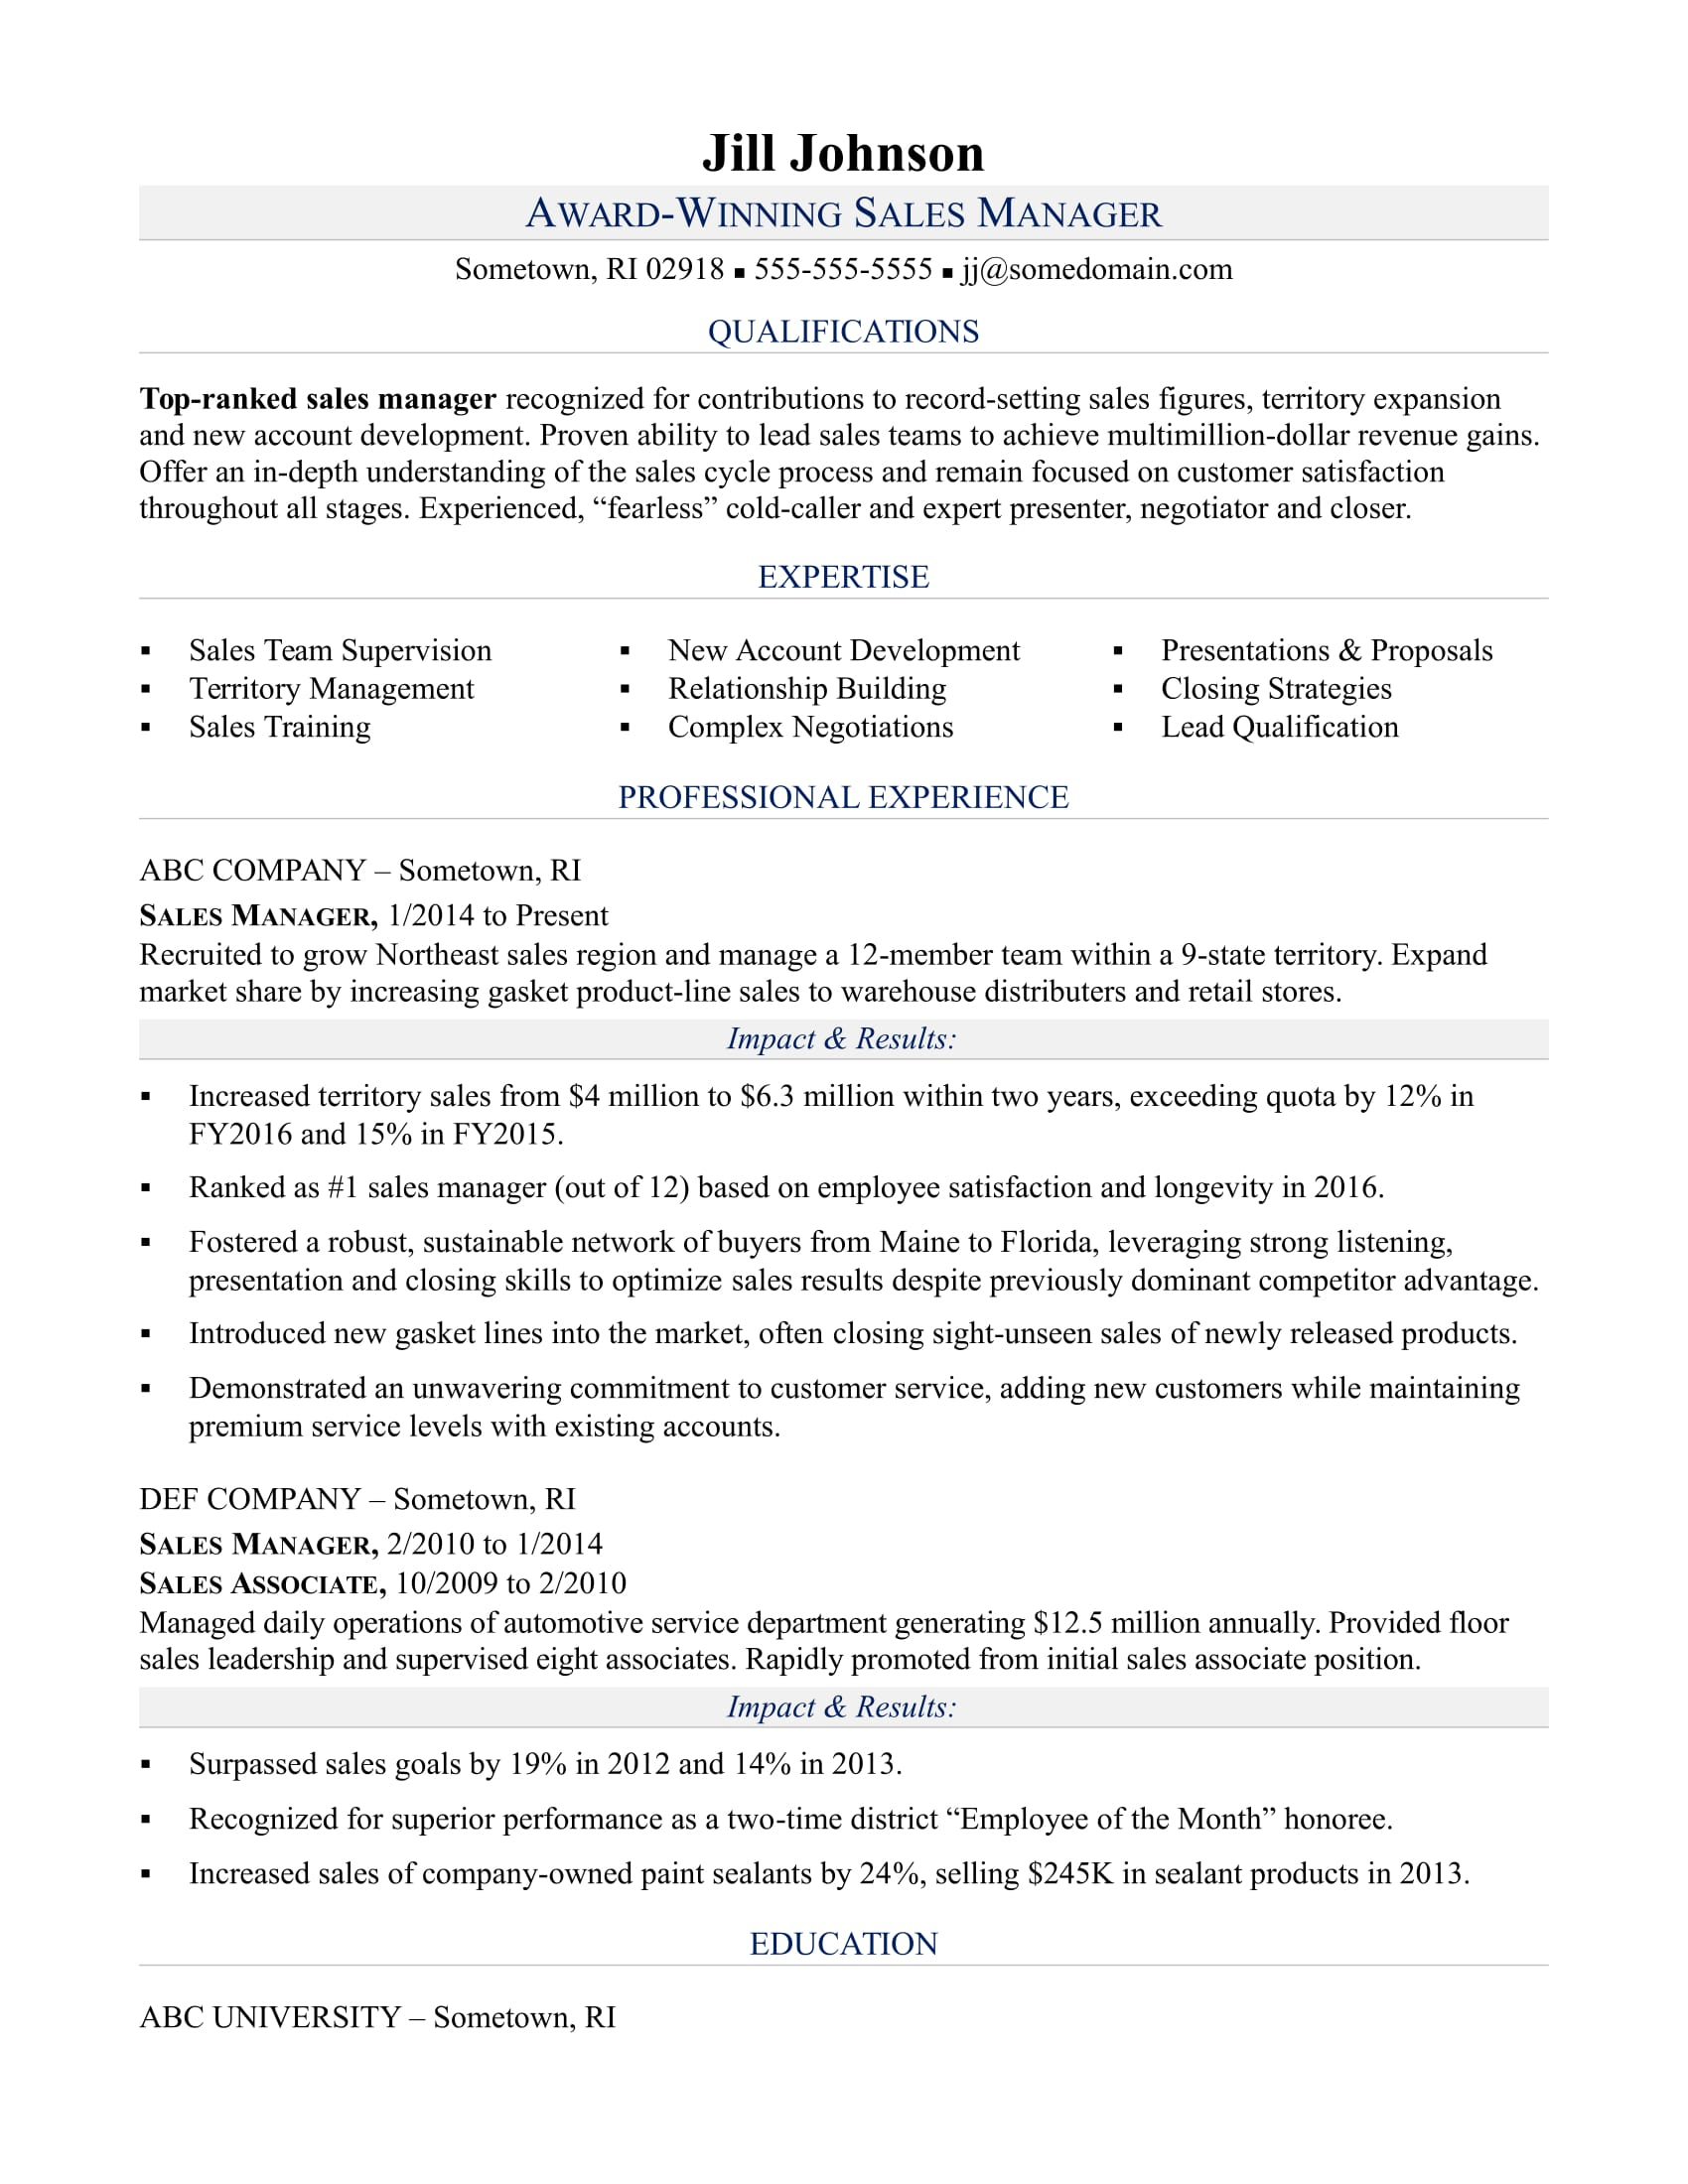 Sample Resume For A Sales Manager  Sample Sales Resumes